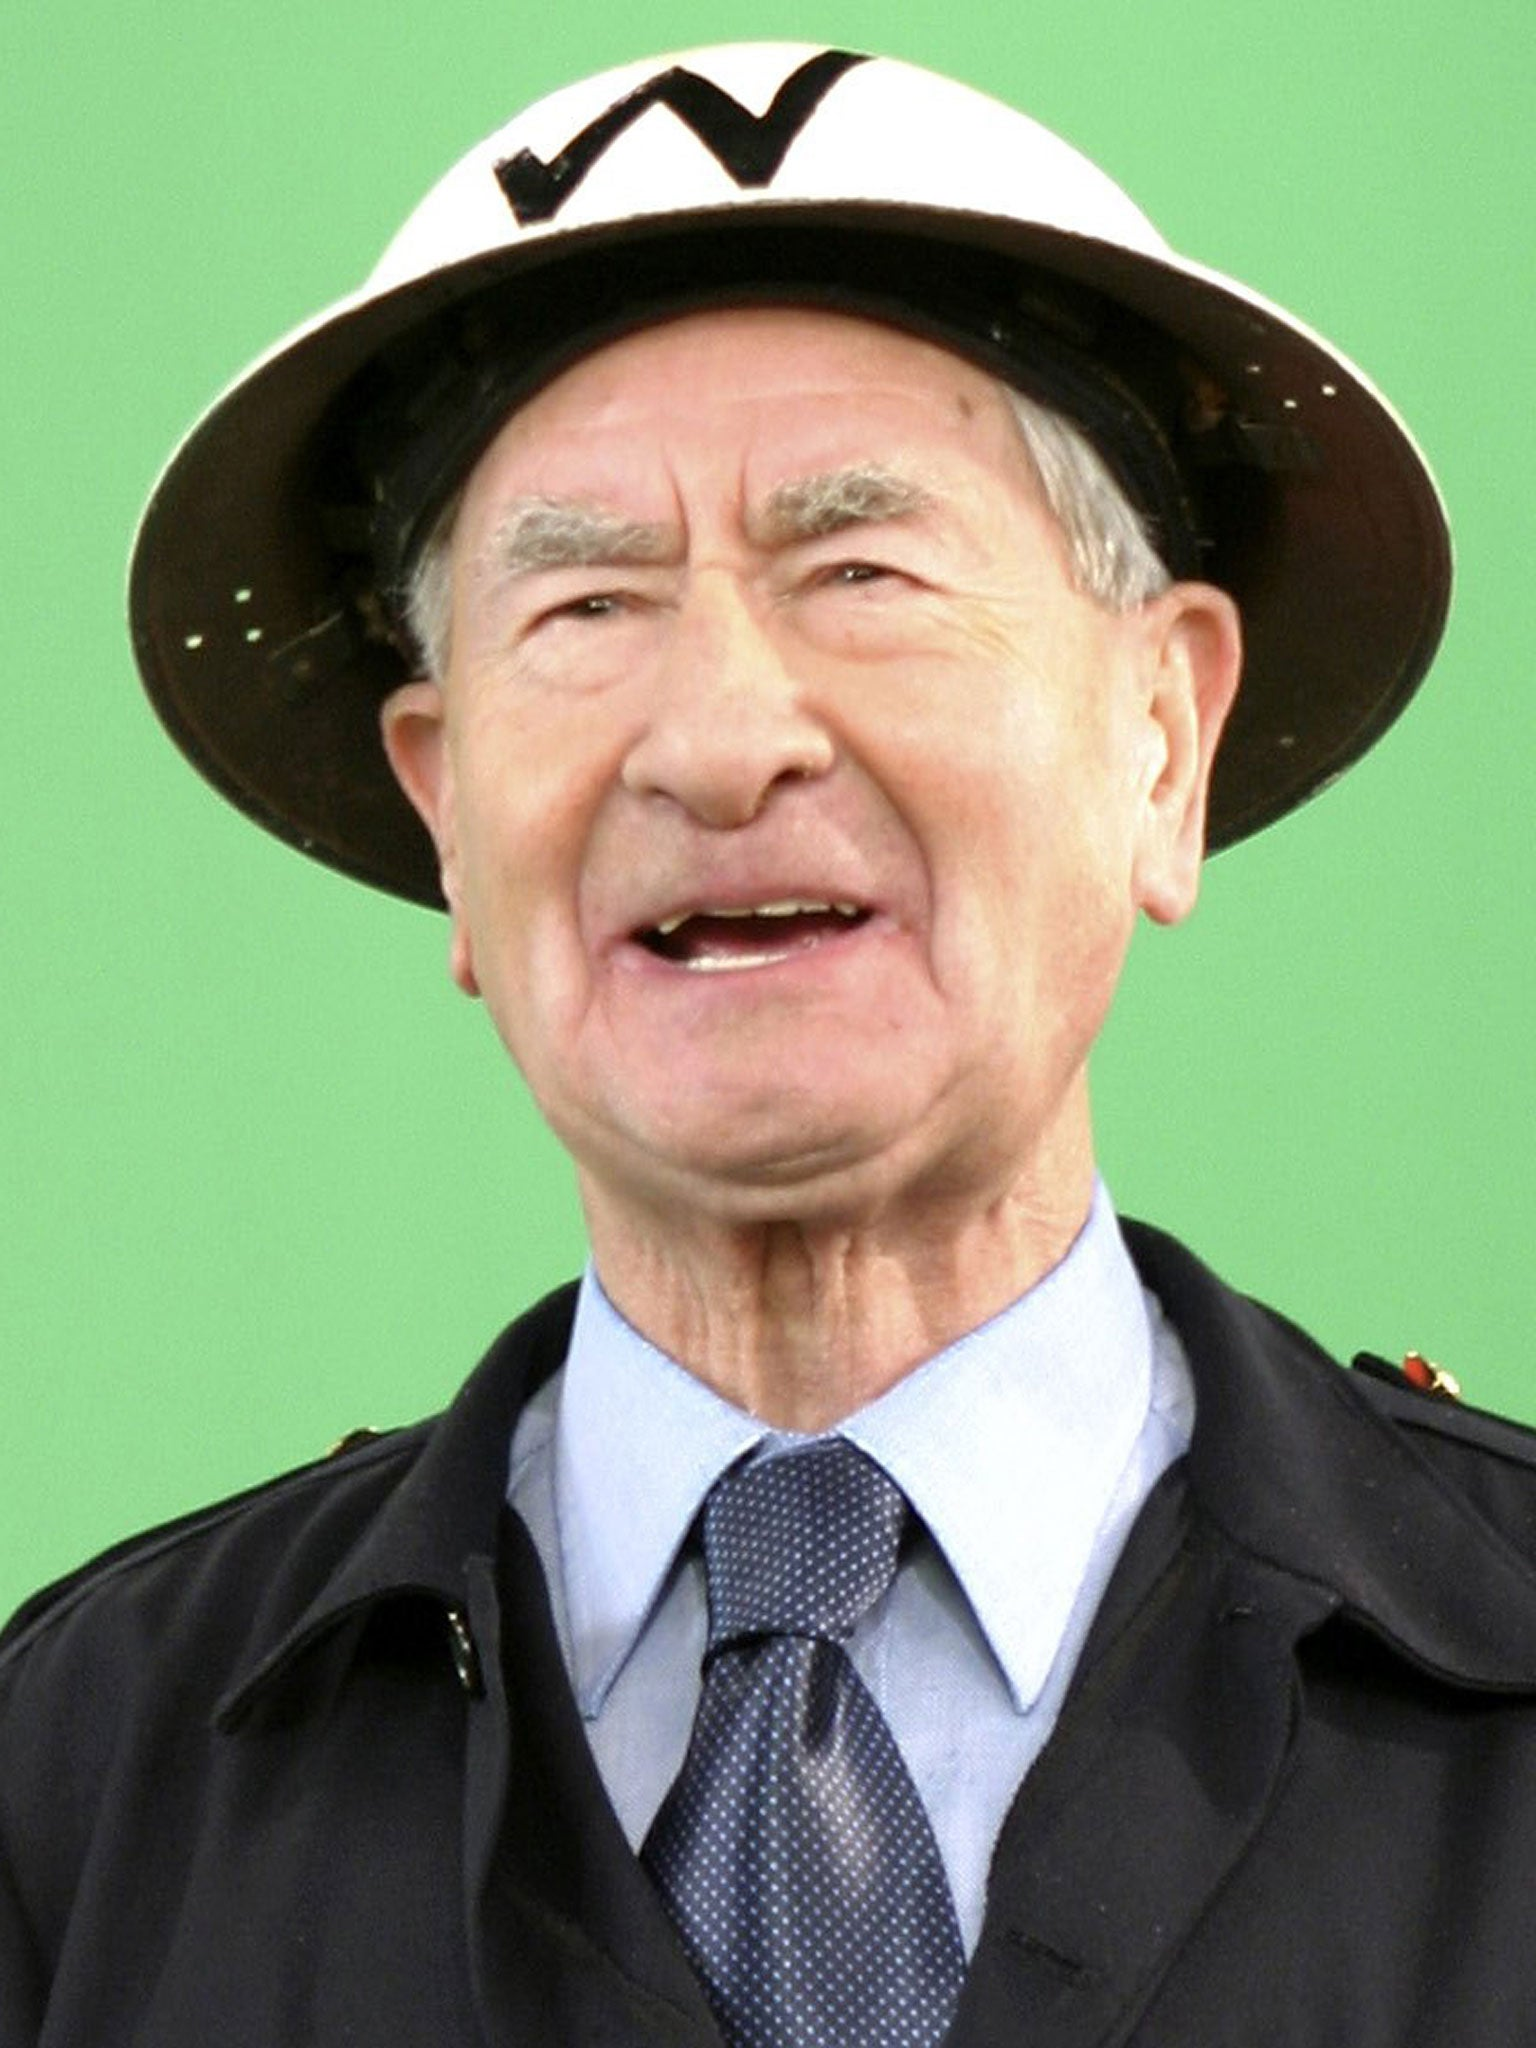 Dad S Army Actor Bill Pertwee Dies Aged 86 The Independent